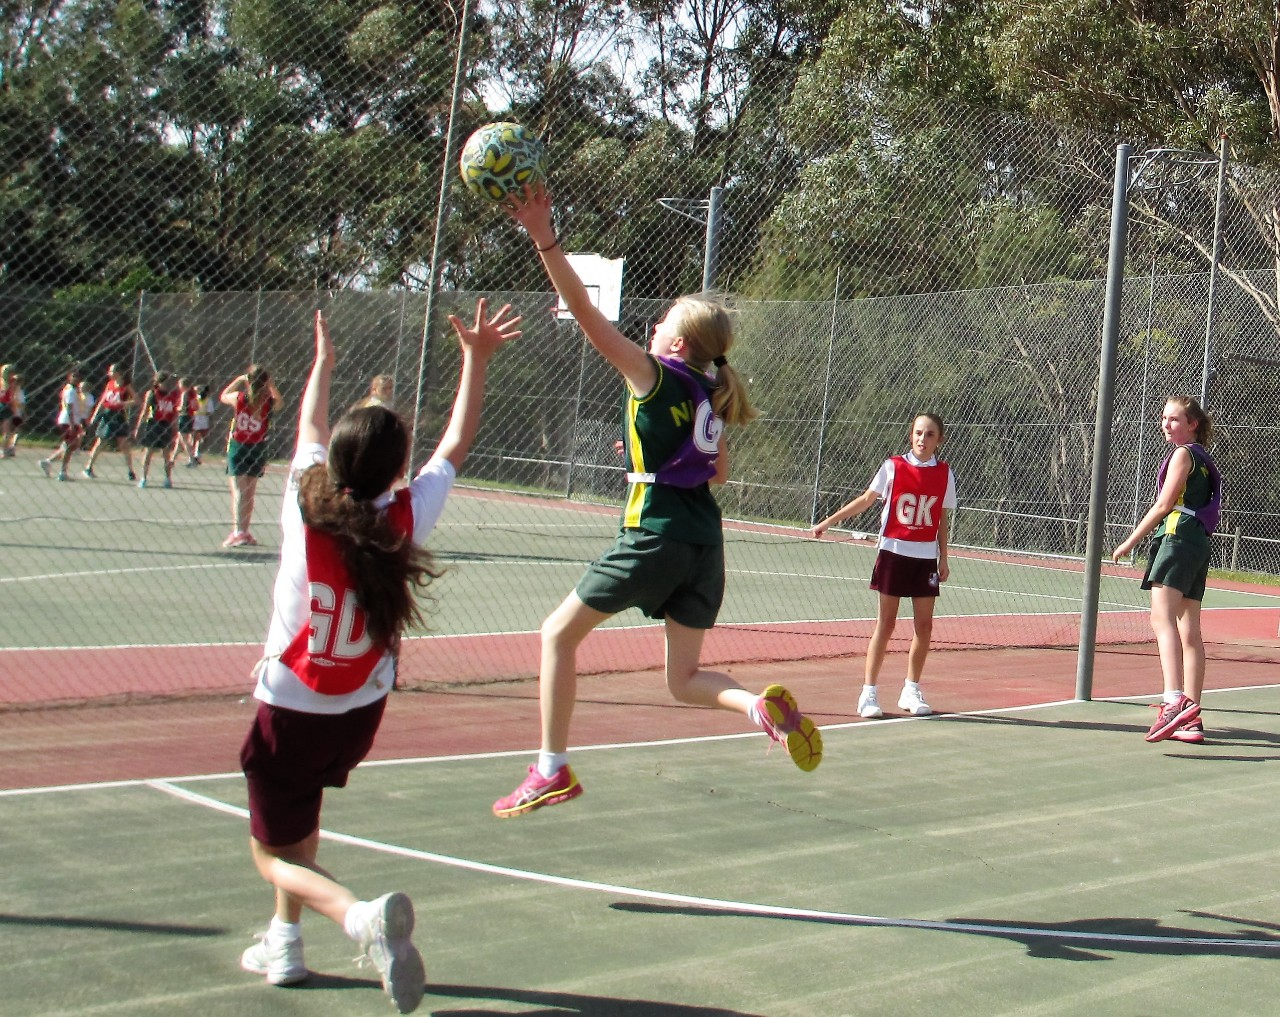 Girls playing basket ball at NSW primary schools sports association